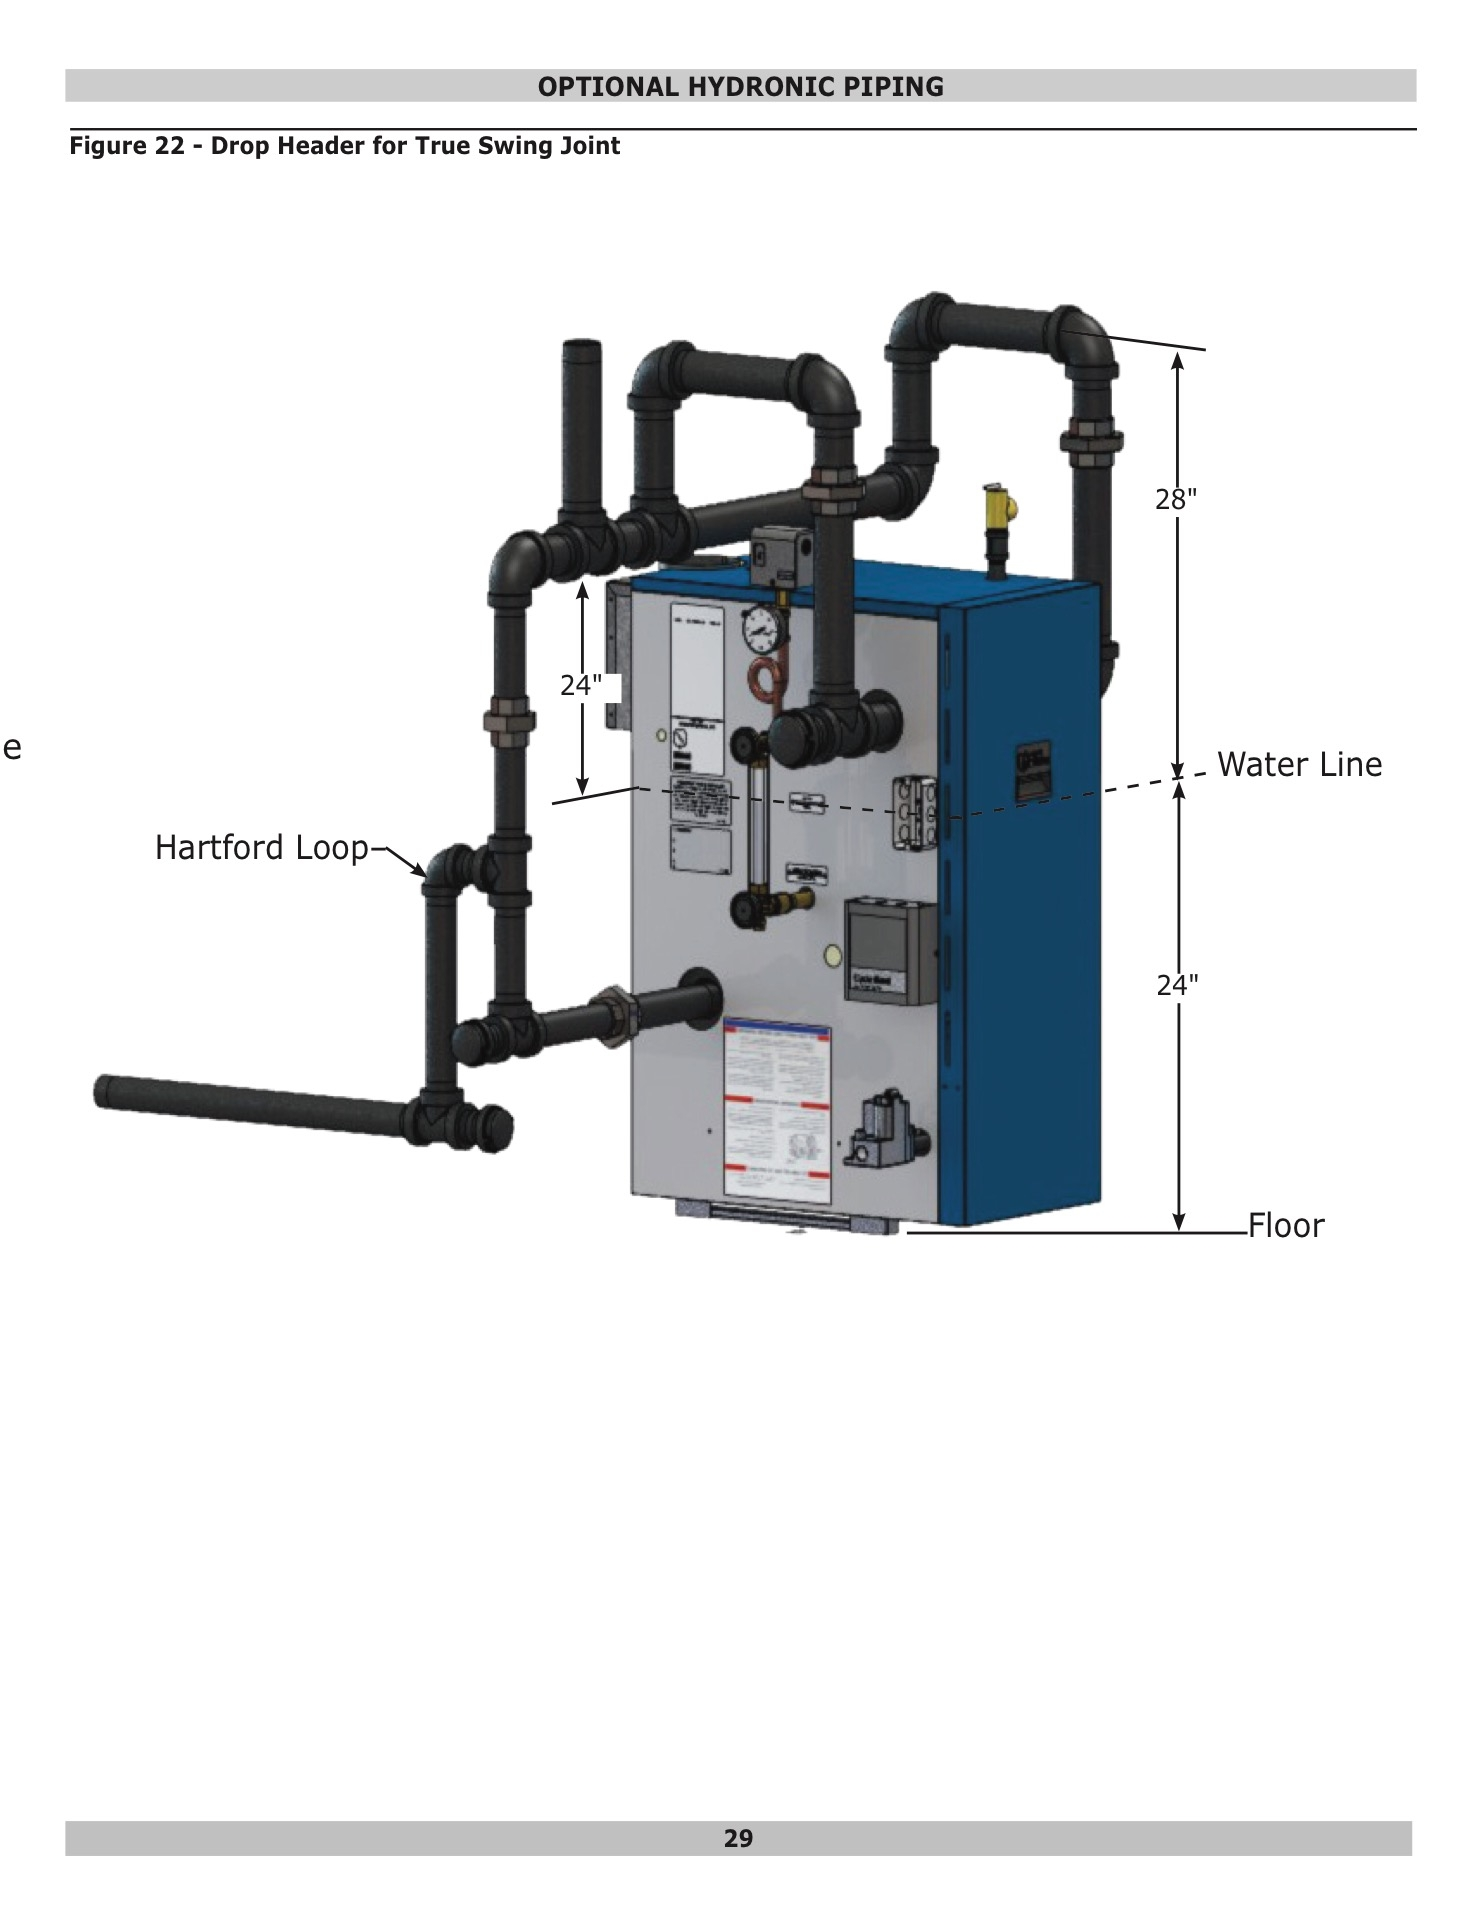 Burnham 40 40 or 40 pipe to feed the main — Heating Help The Wall